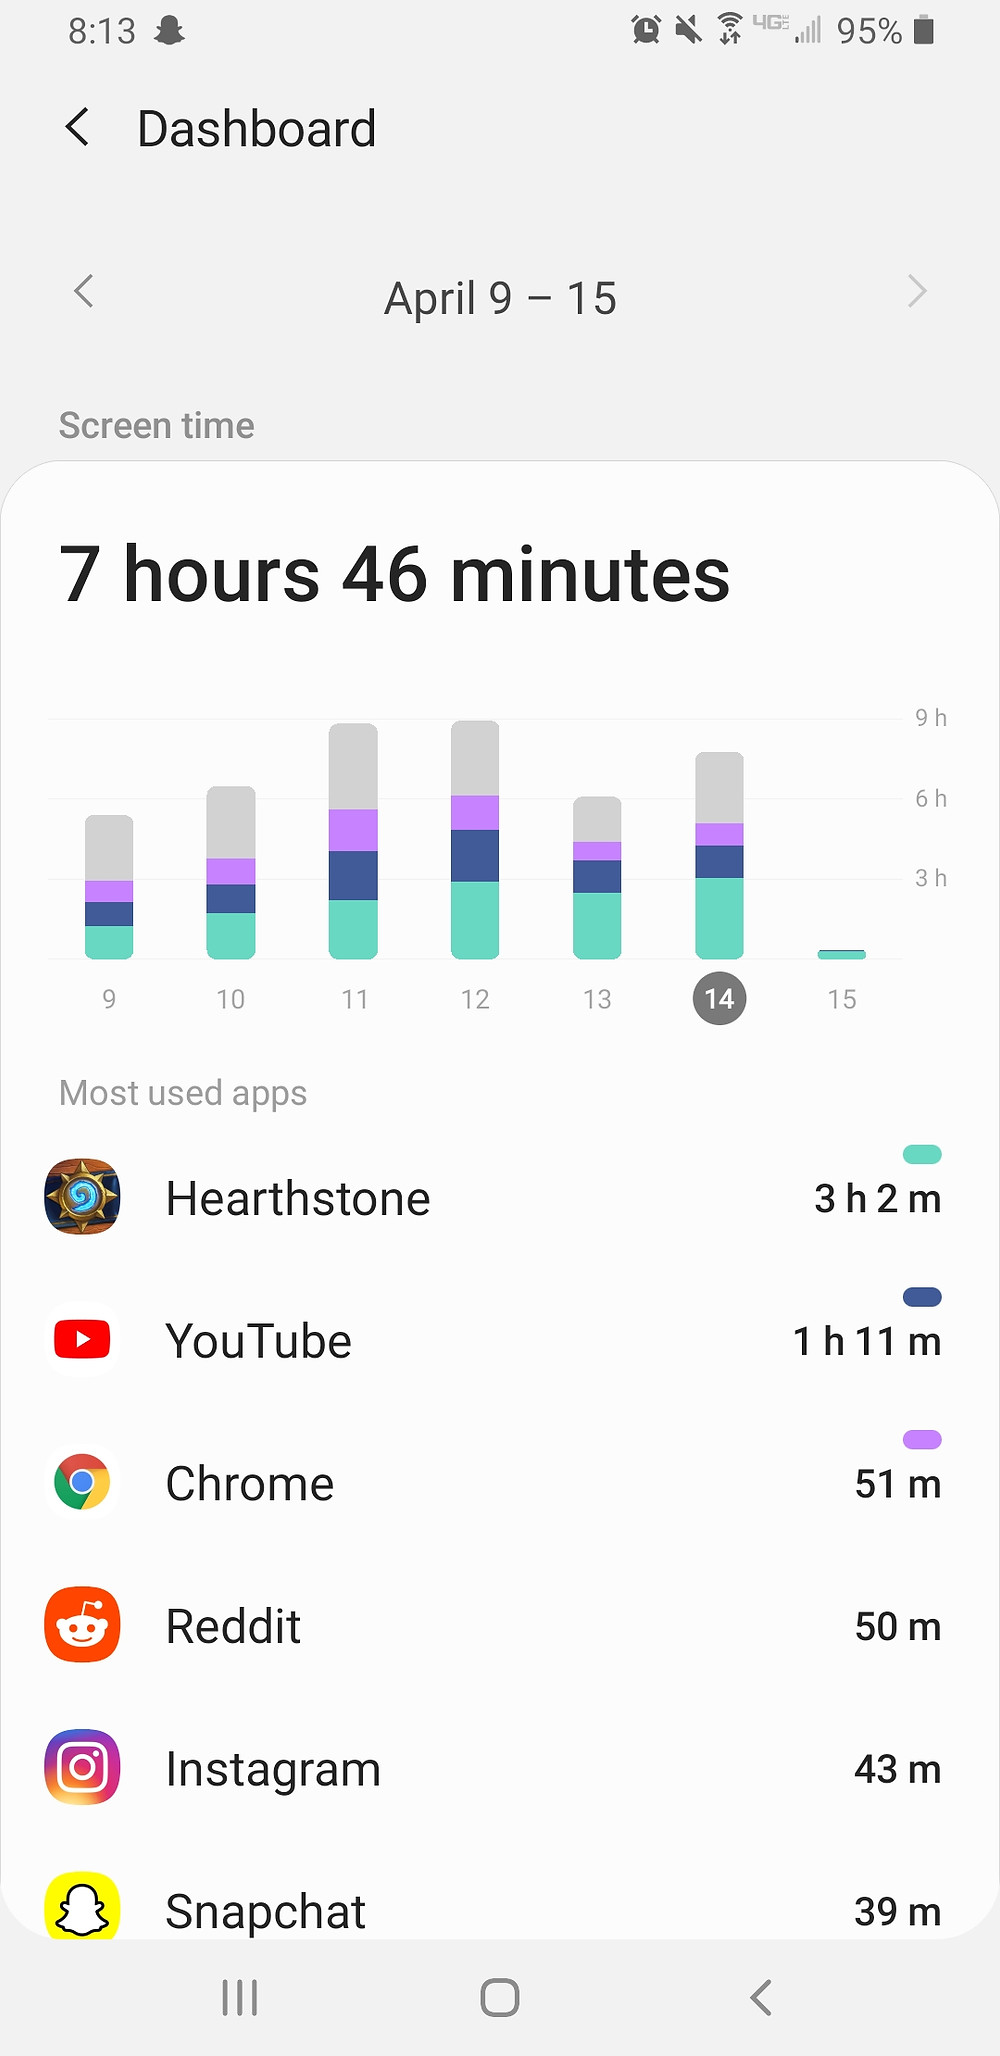 Screenshot which shows that I spent 7 hours and 46 minutes on my phone yesterday